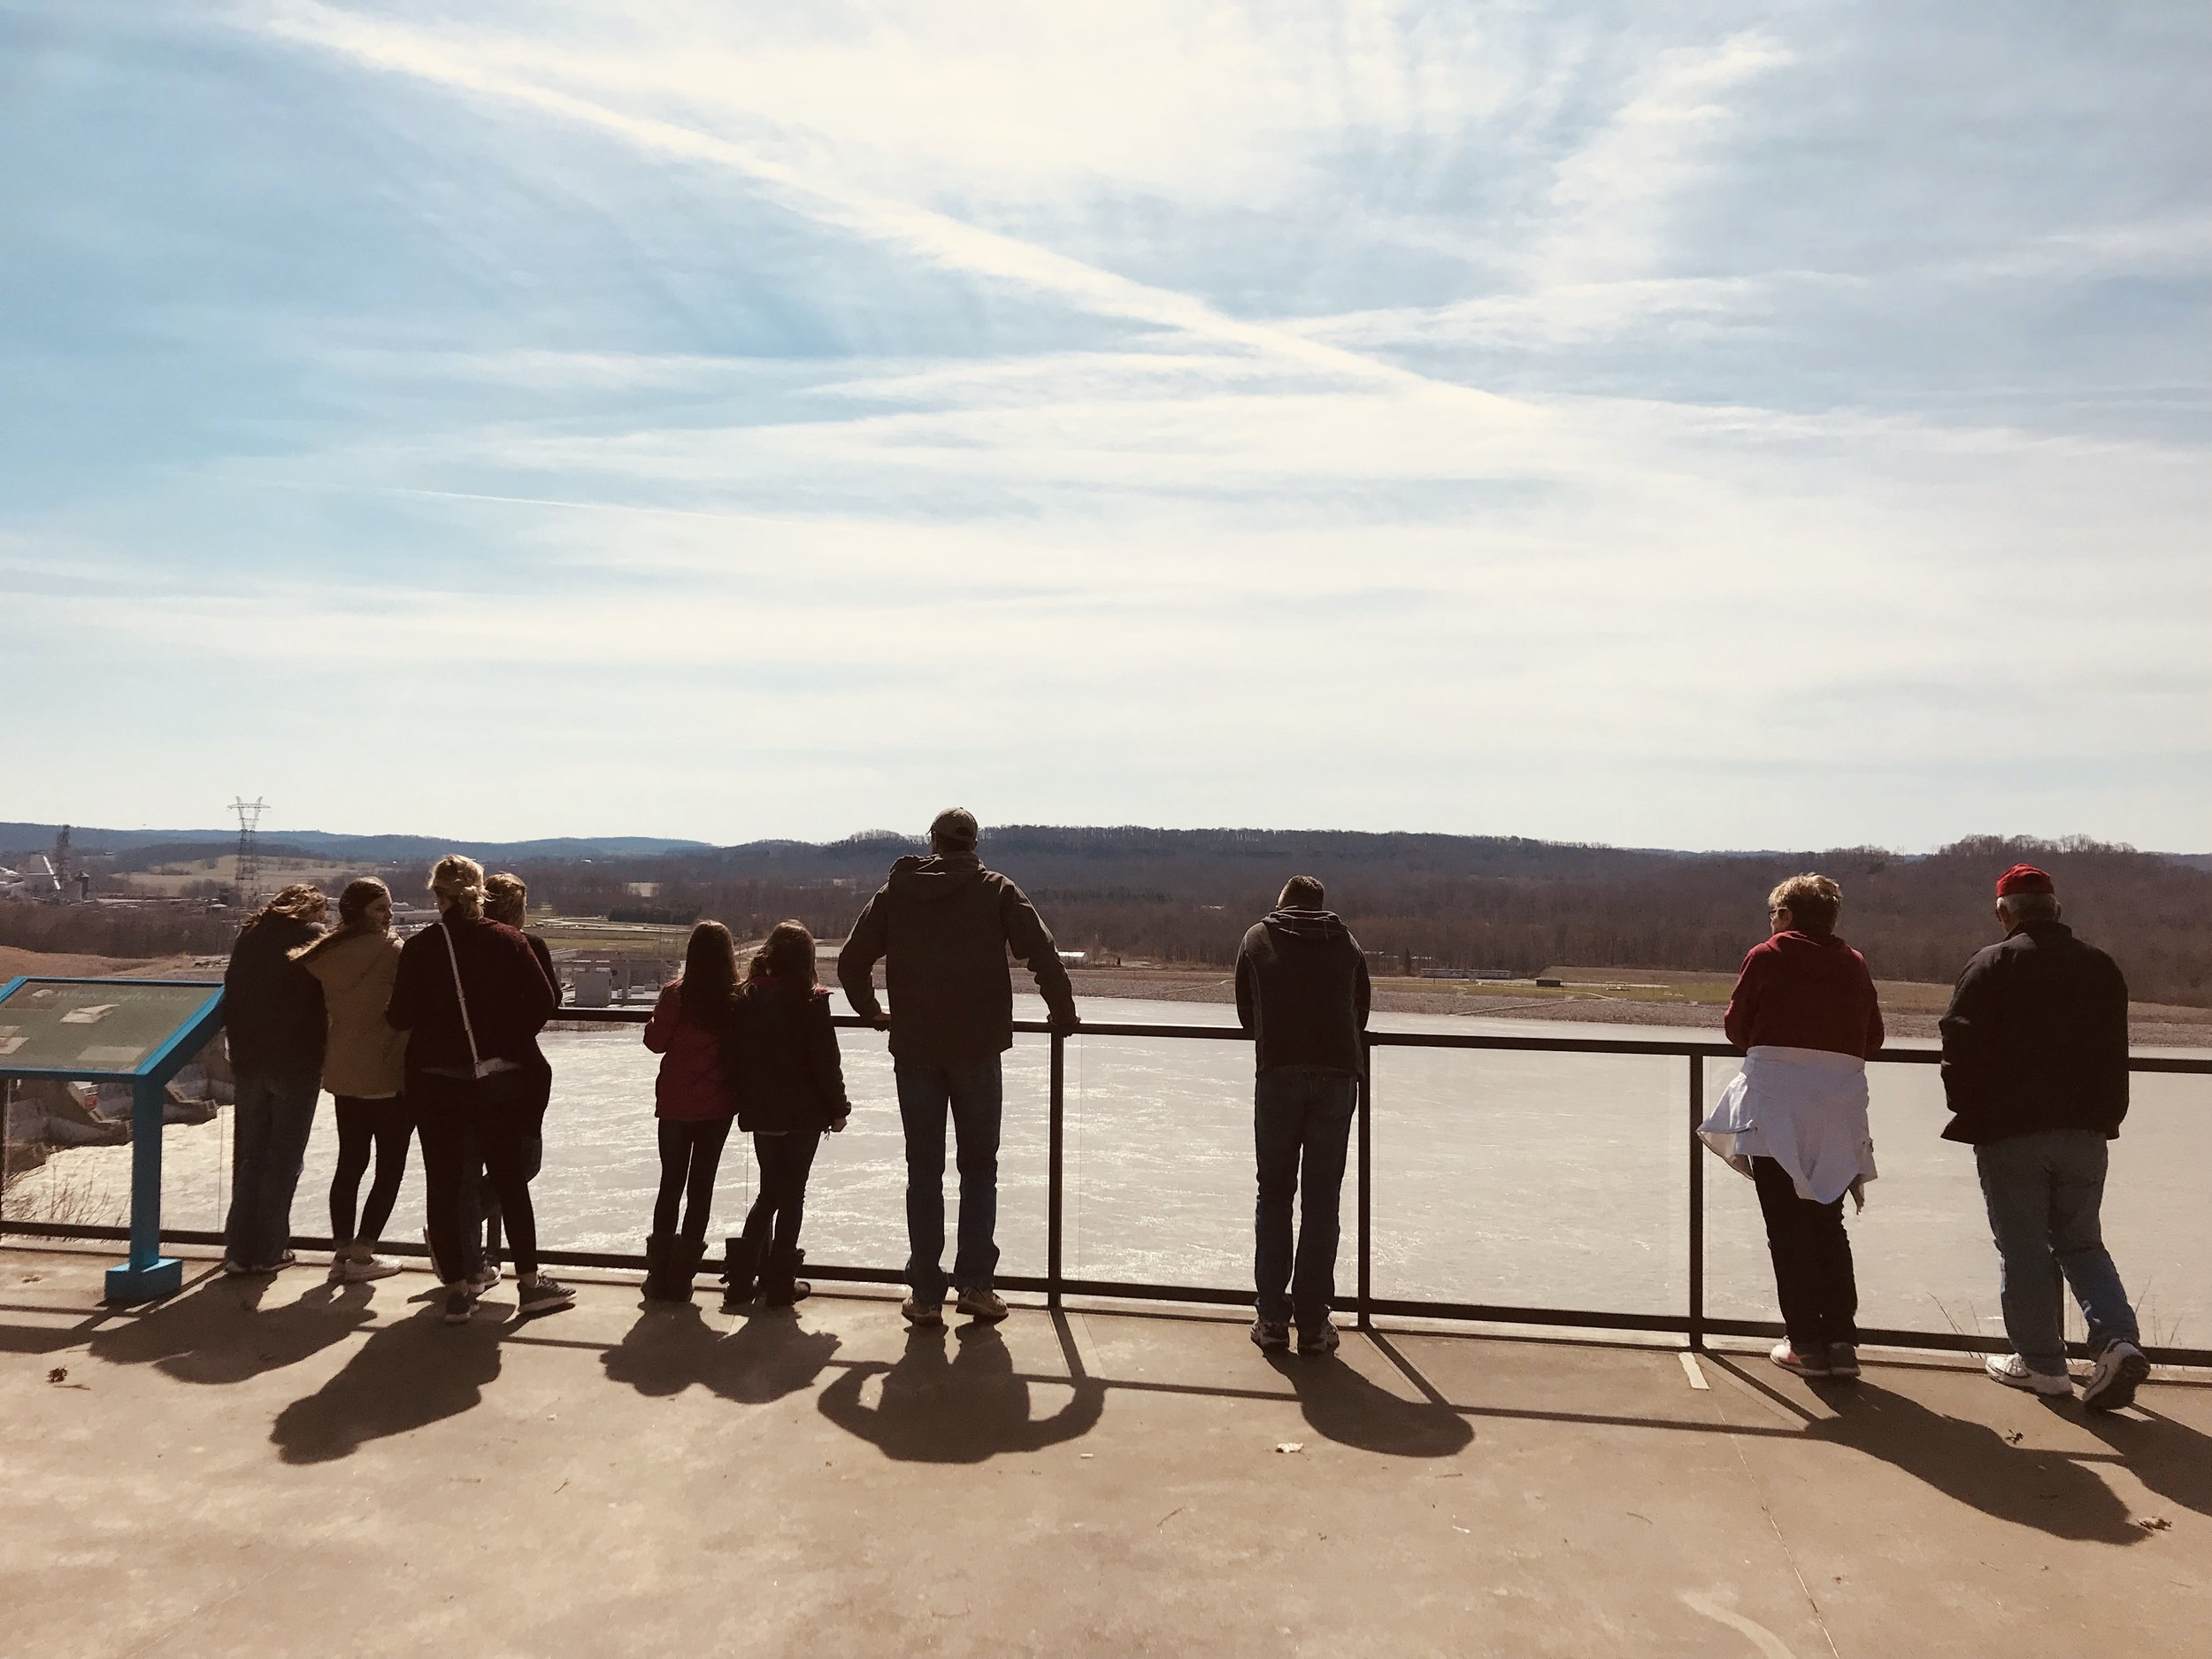 Overlook of the barges on the Ohio River